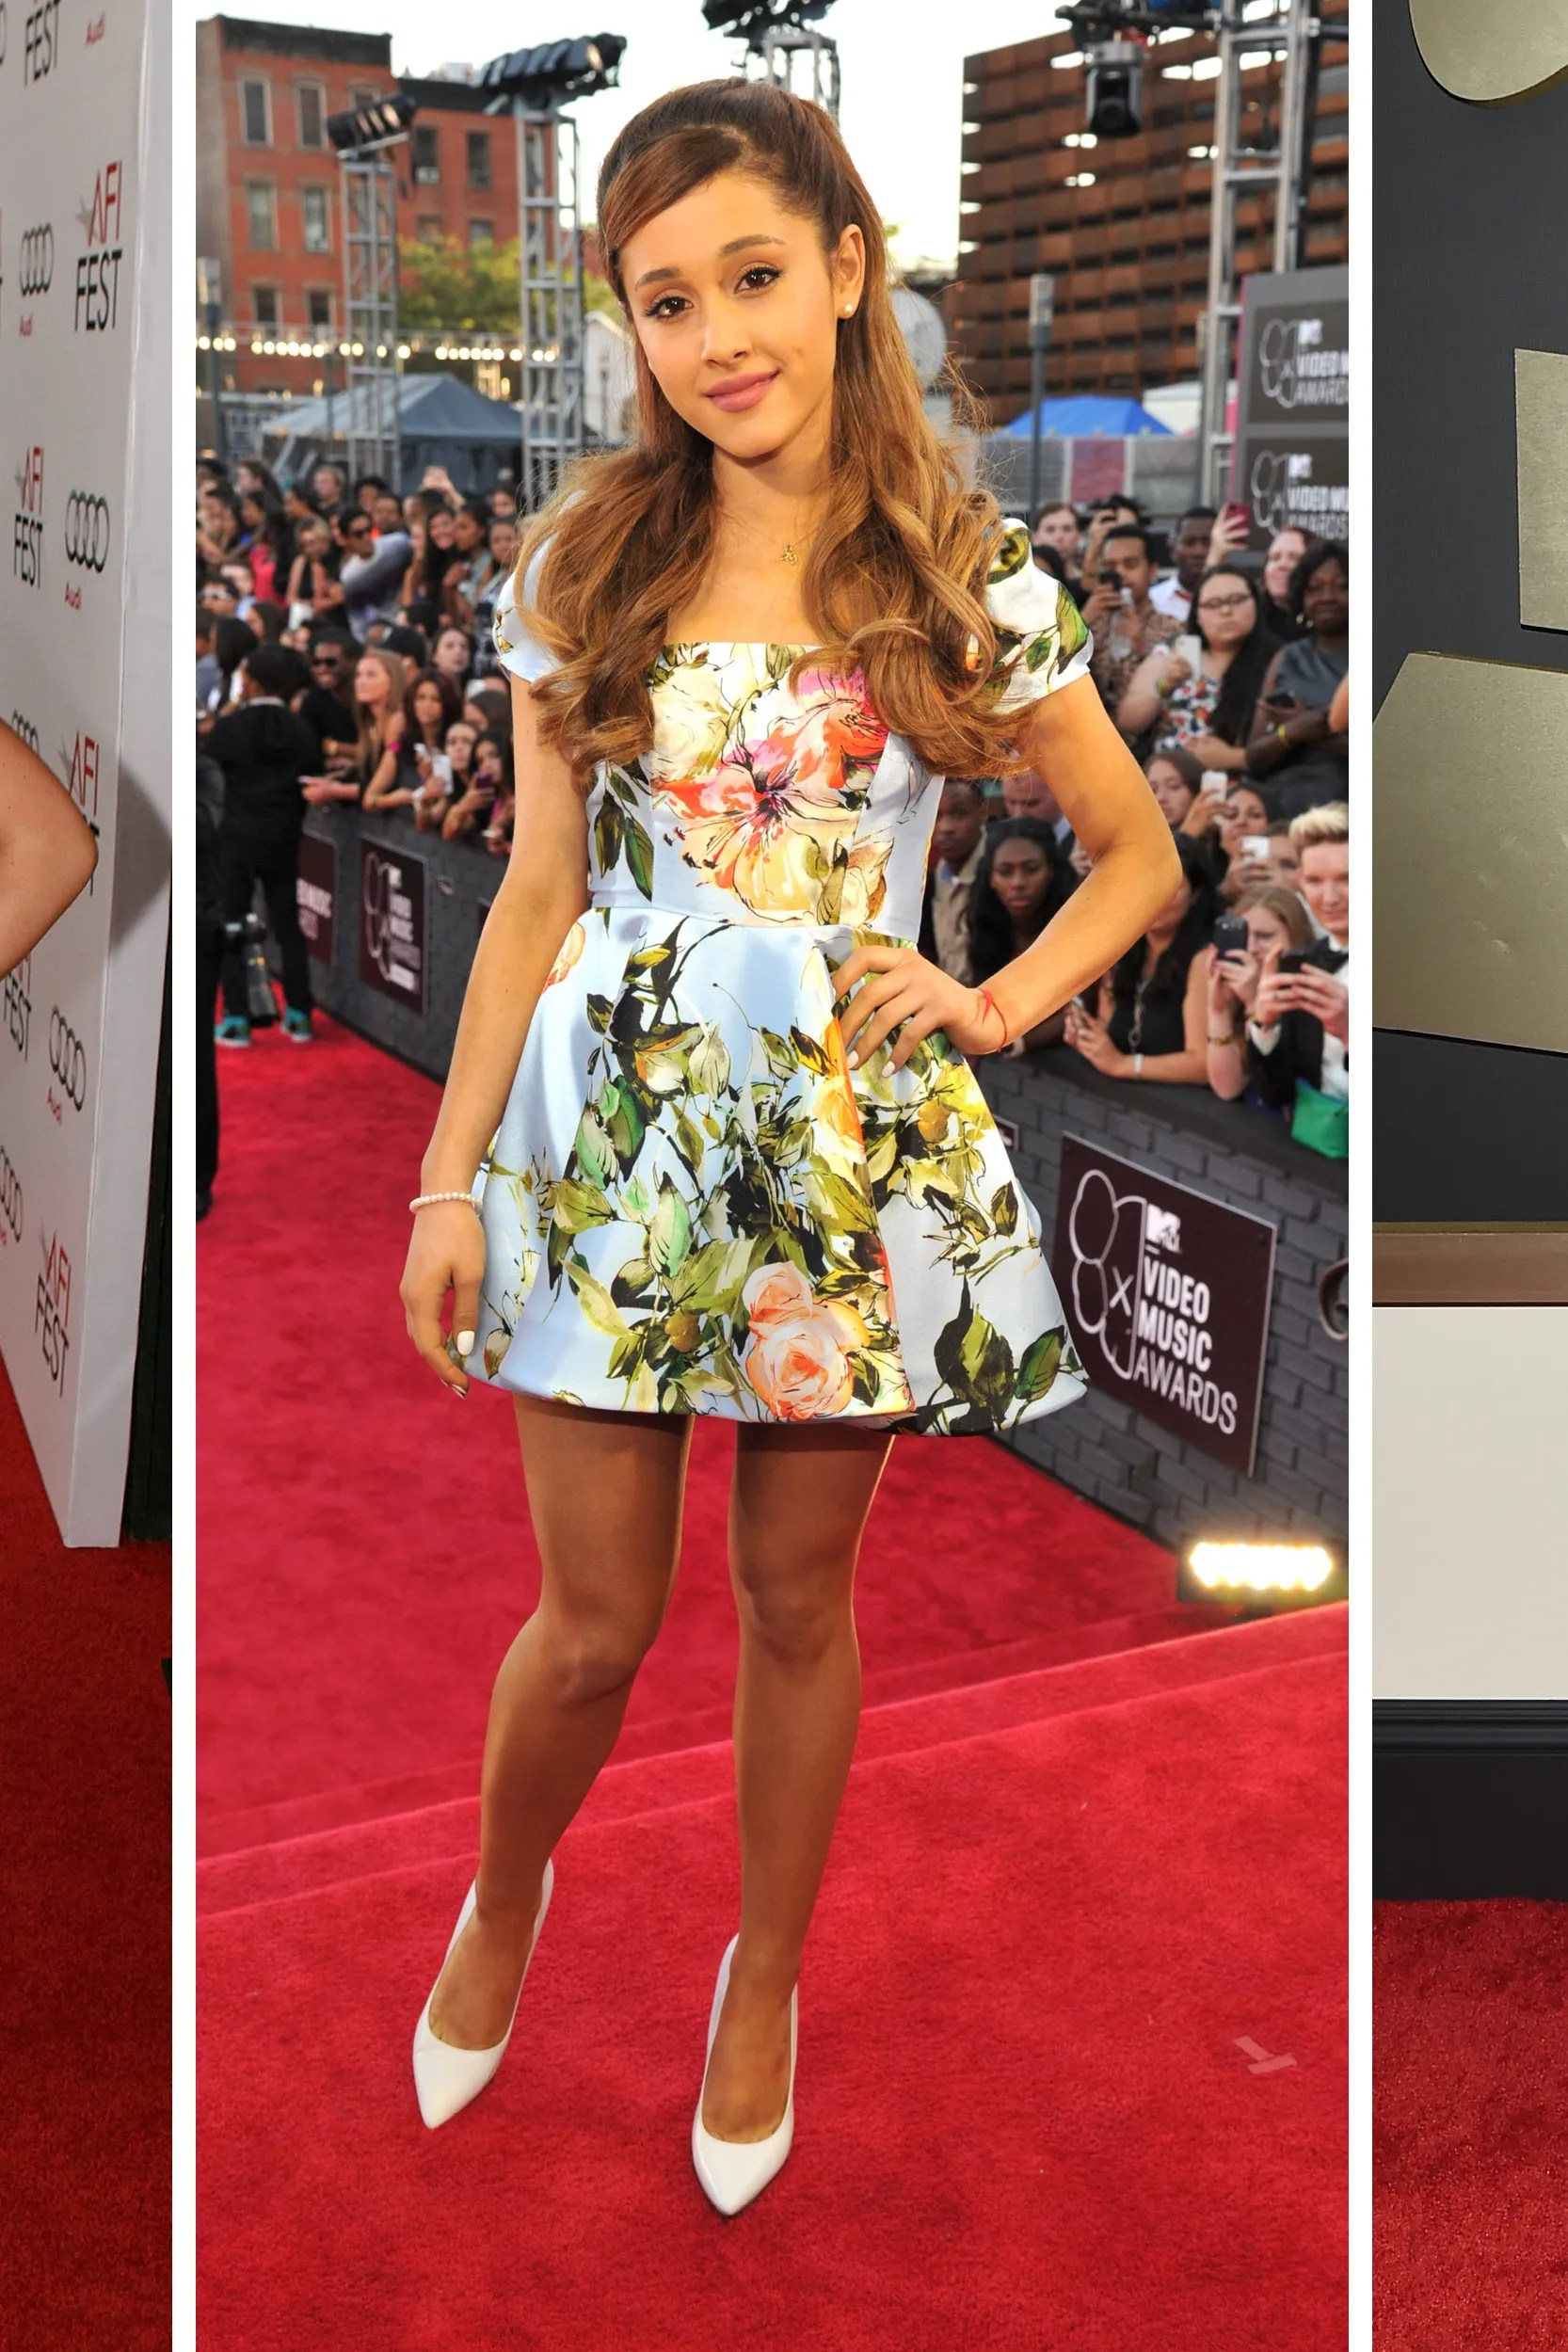 Tappeto Rosso Grande Ariana Grande S Best Red Carpet Looks Ariana Grande Style